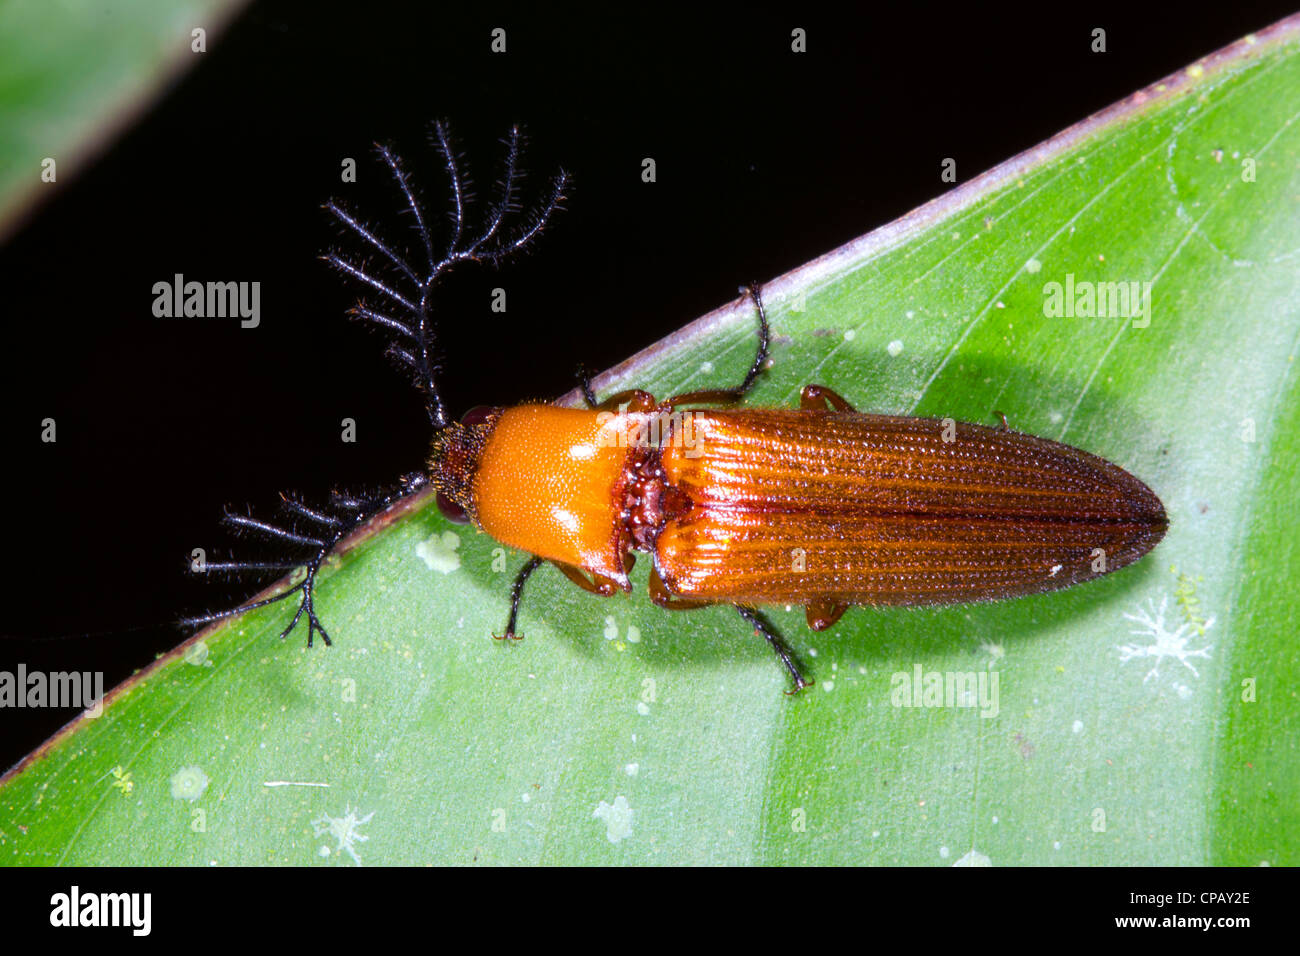 Click beetle (Elateridae) with large feathered antennae. Probably is a male who uses these antennae to detect female - Stock Image